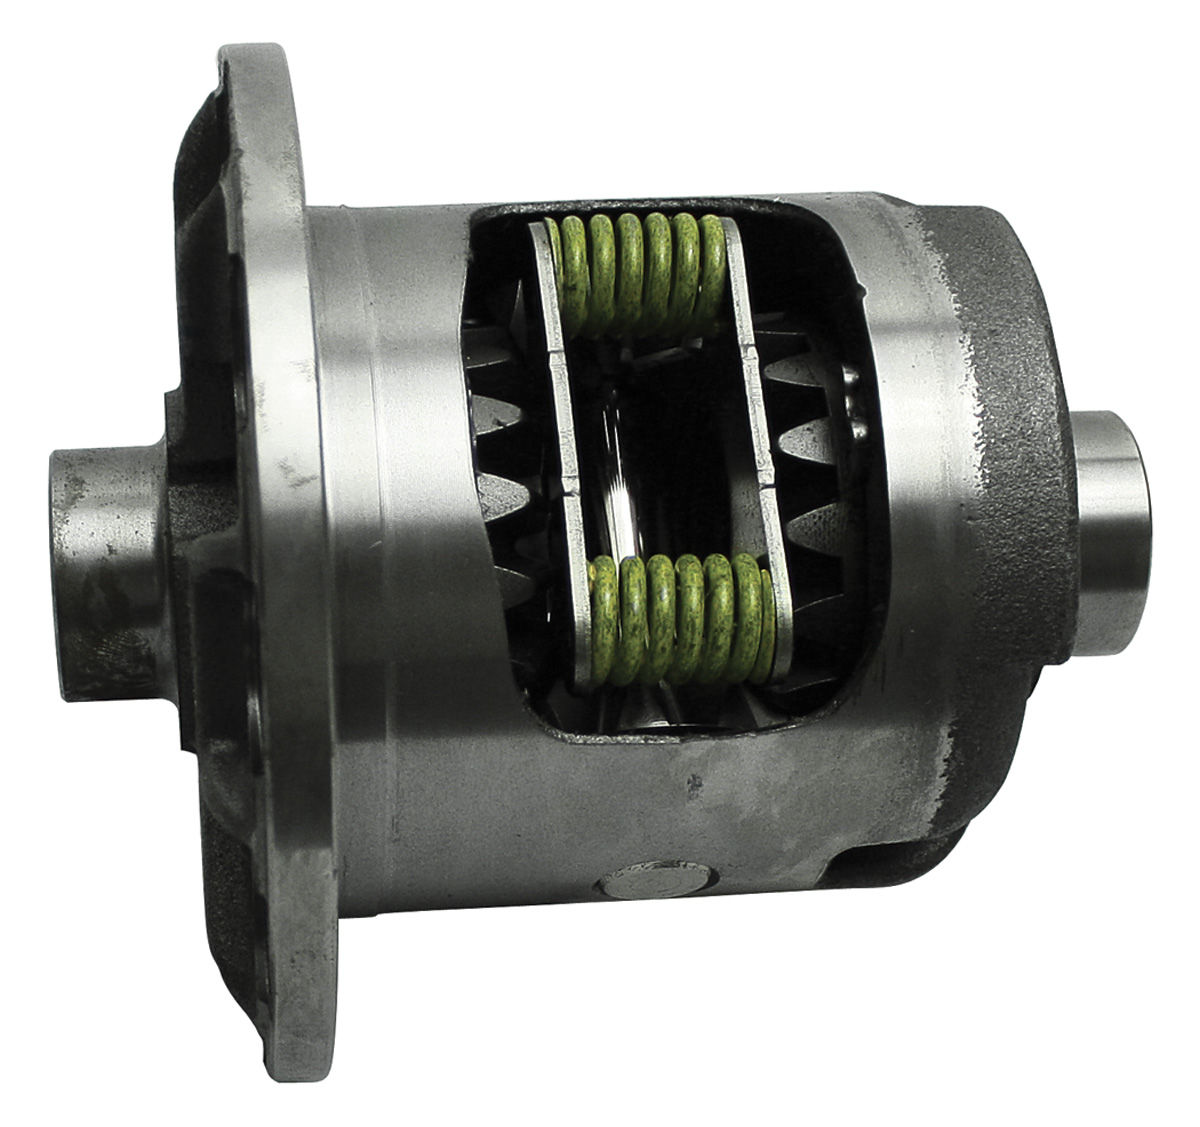 Chevelle Differential Limited Slip Posi 10 Bolt 8 5